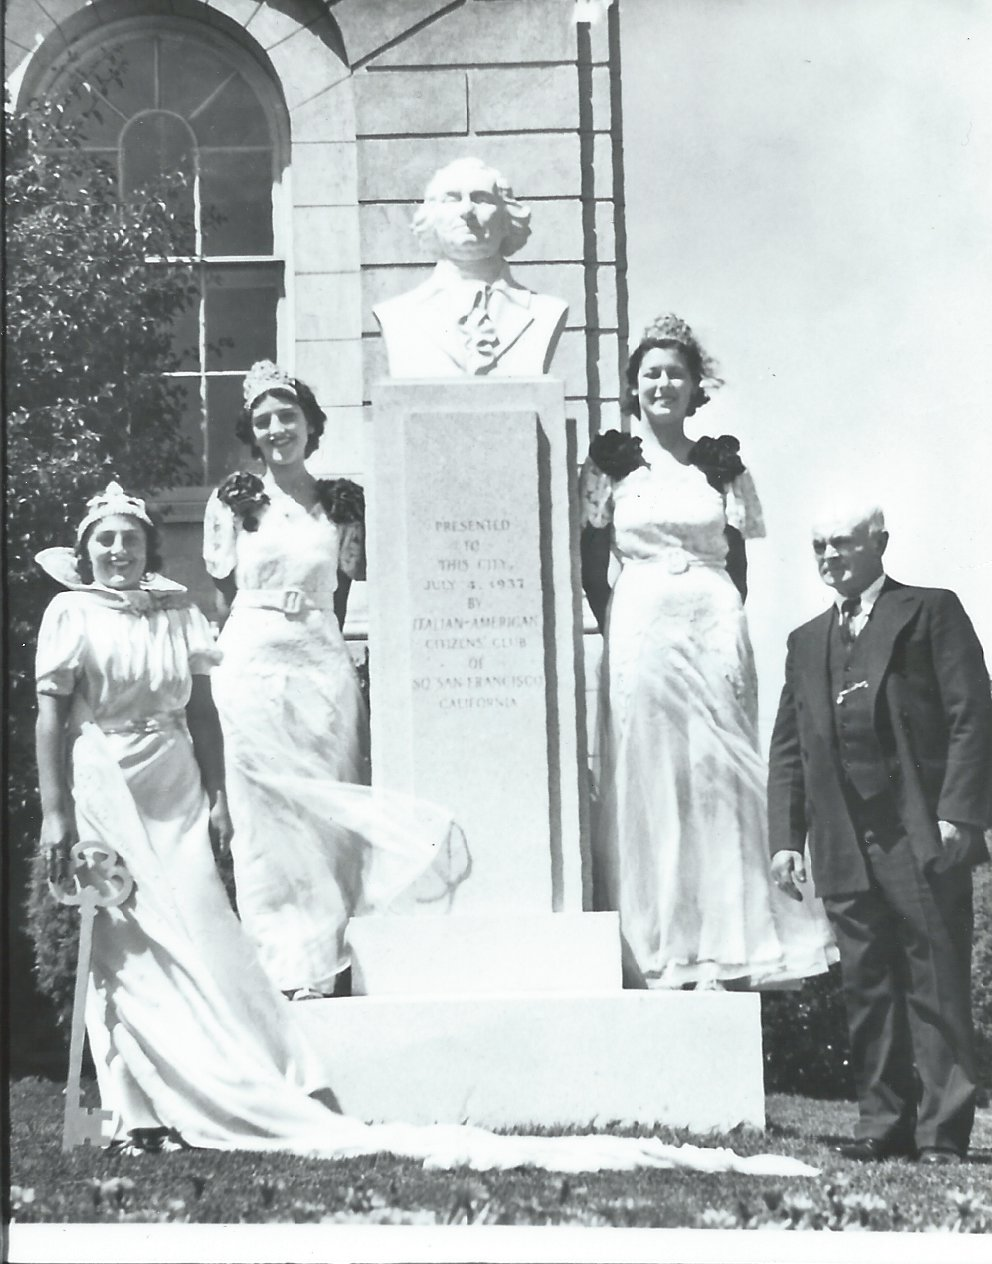 SSF Italian American Citizens Club to Rededicate Washington Bust at City Hall on October 23rd